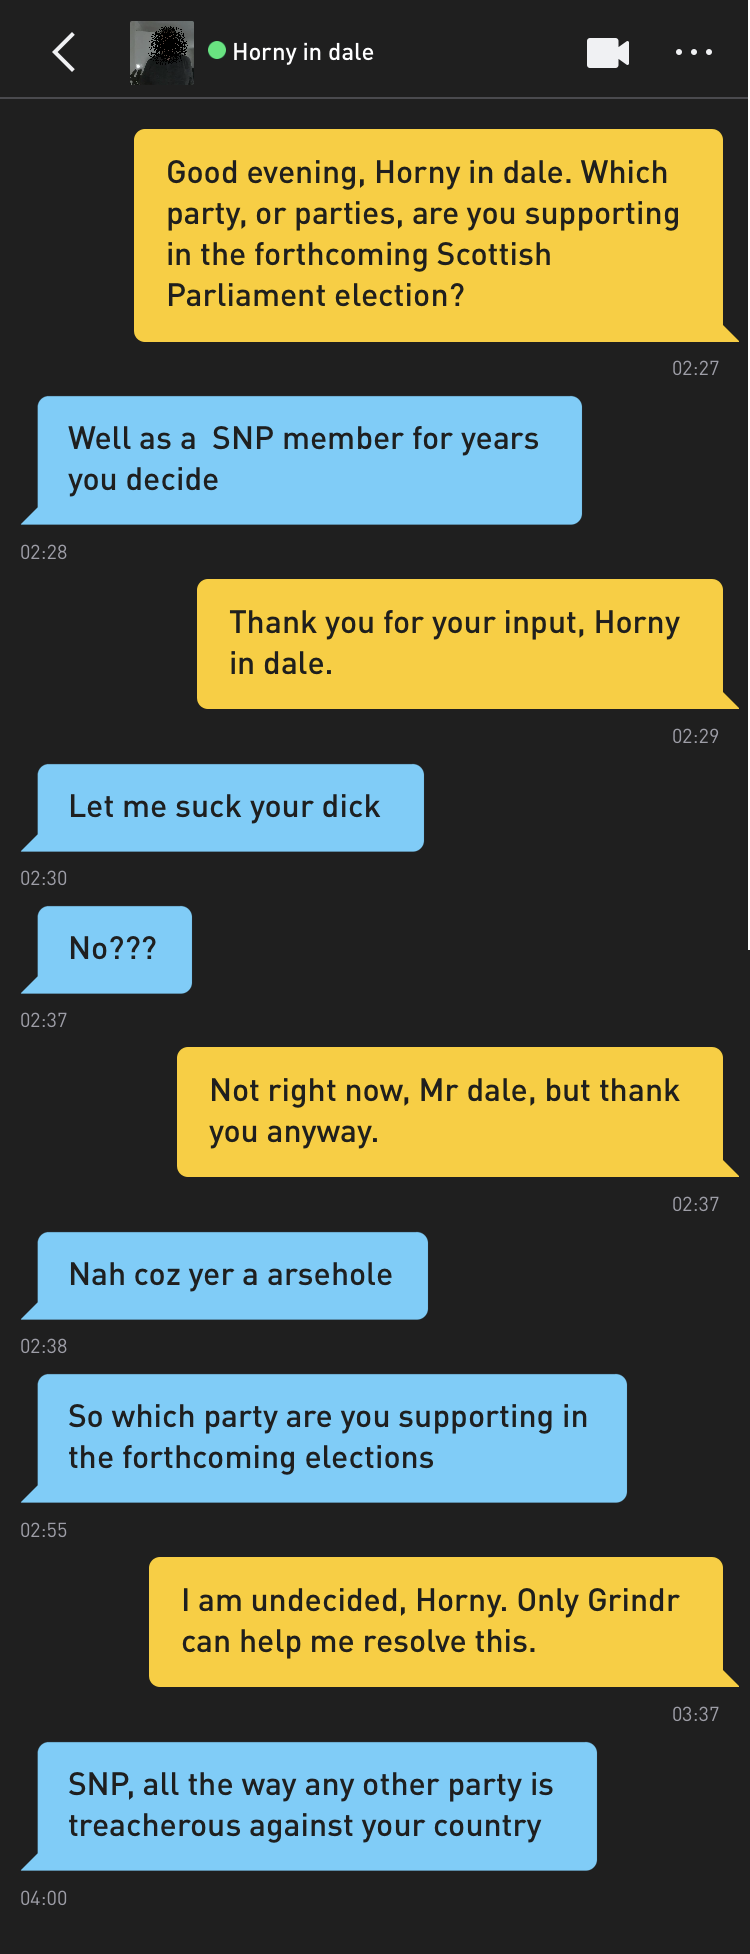 Me: Good evening, Horny in dale. Which party, or parties, are you supporting in the forthcoming Scottish Parliament election? Horny in dale: Well as a SNP member for years you decide Me: Thank you for your input, Horny in dale. Horny in dale: Let me suck your dick Horny in dale: No??? Me: Not right now, Mr dale, but thank you anyway. Horny in dale: Nah coz yer a arsehole Horny in dale: So which party are you supporting in the forthcoming elections Me: I am undecided, Horny. Only Grindr can help me resolve this. Horny in dale: SNP, all the way any other party is treacherous against your country